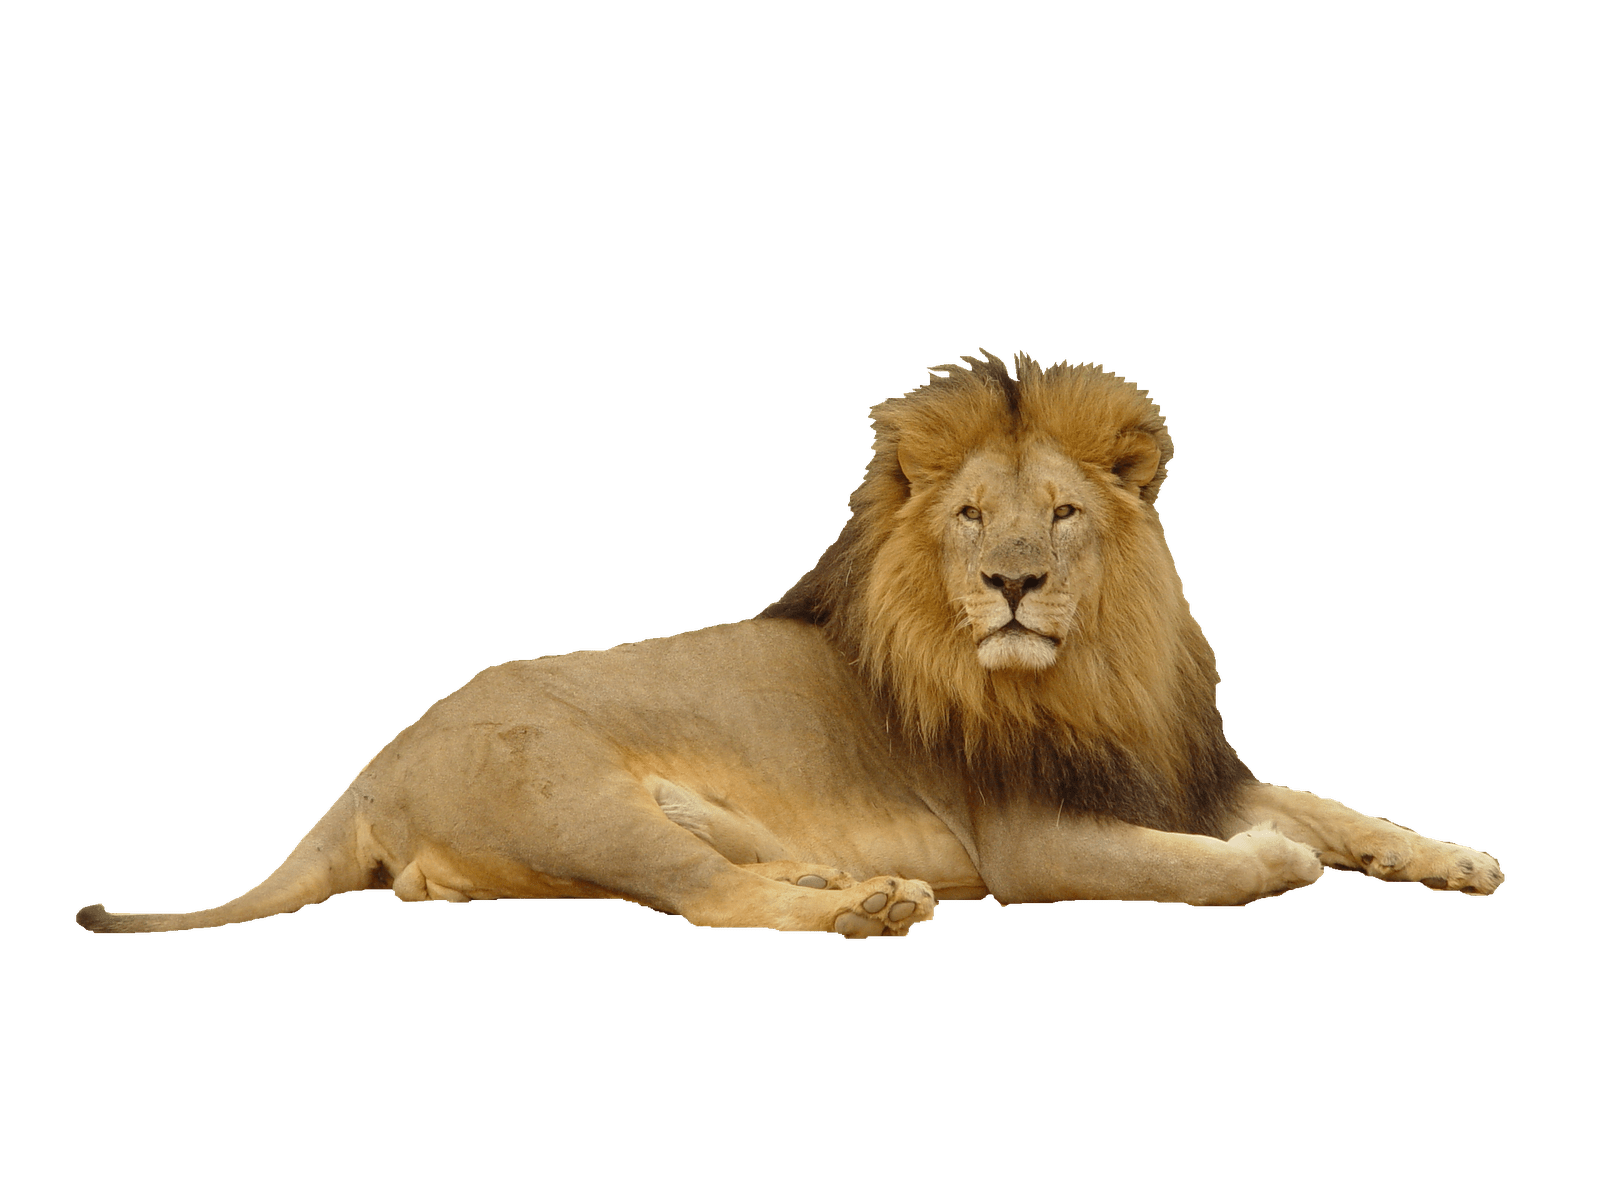 Lion Png Images Free Download Lions